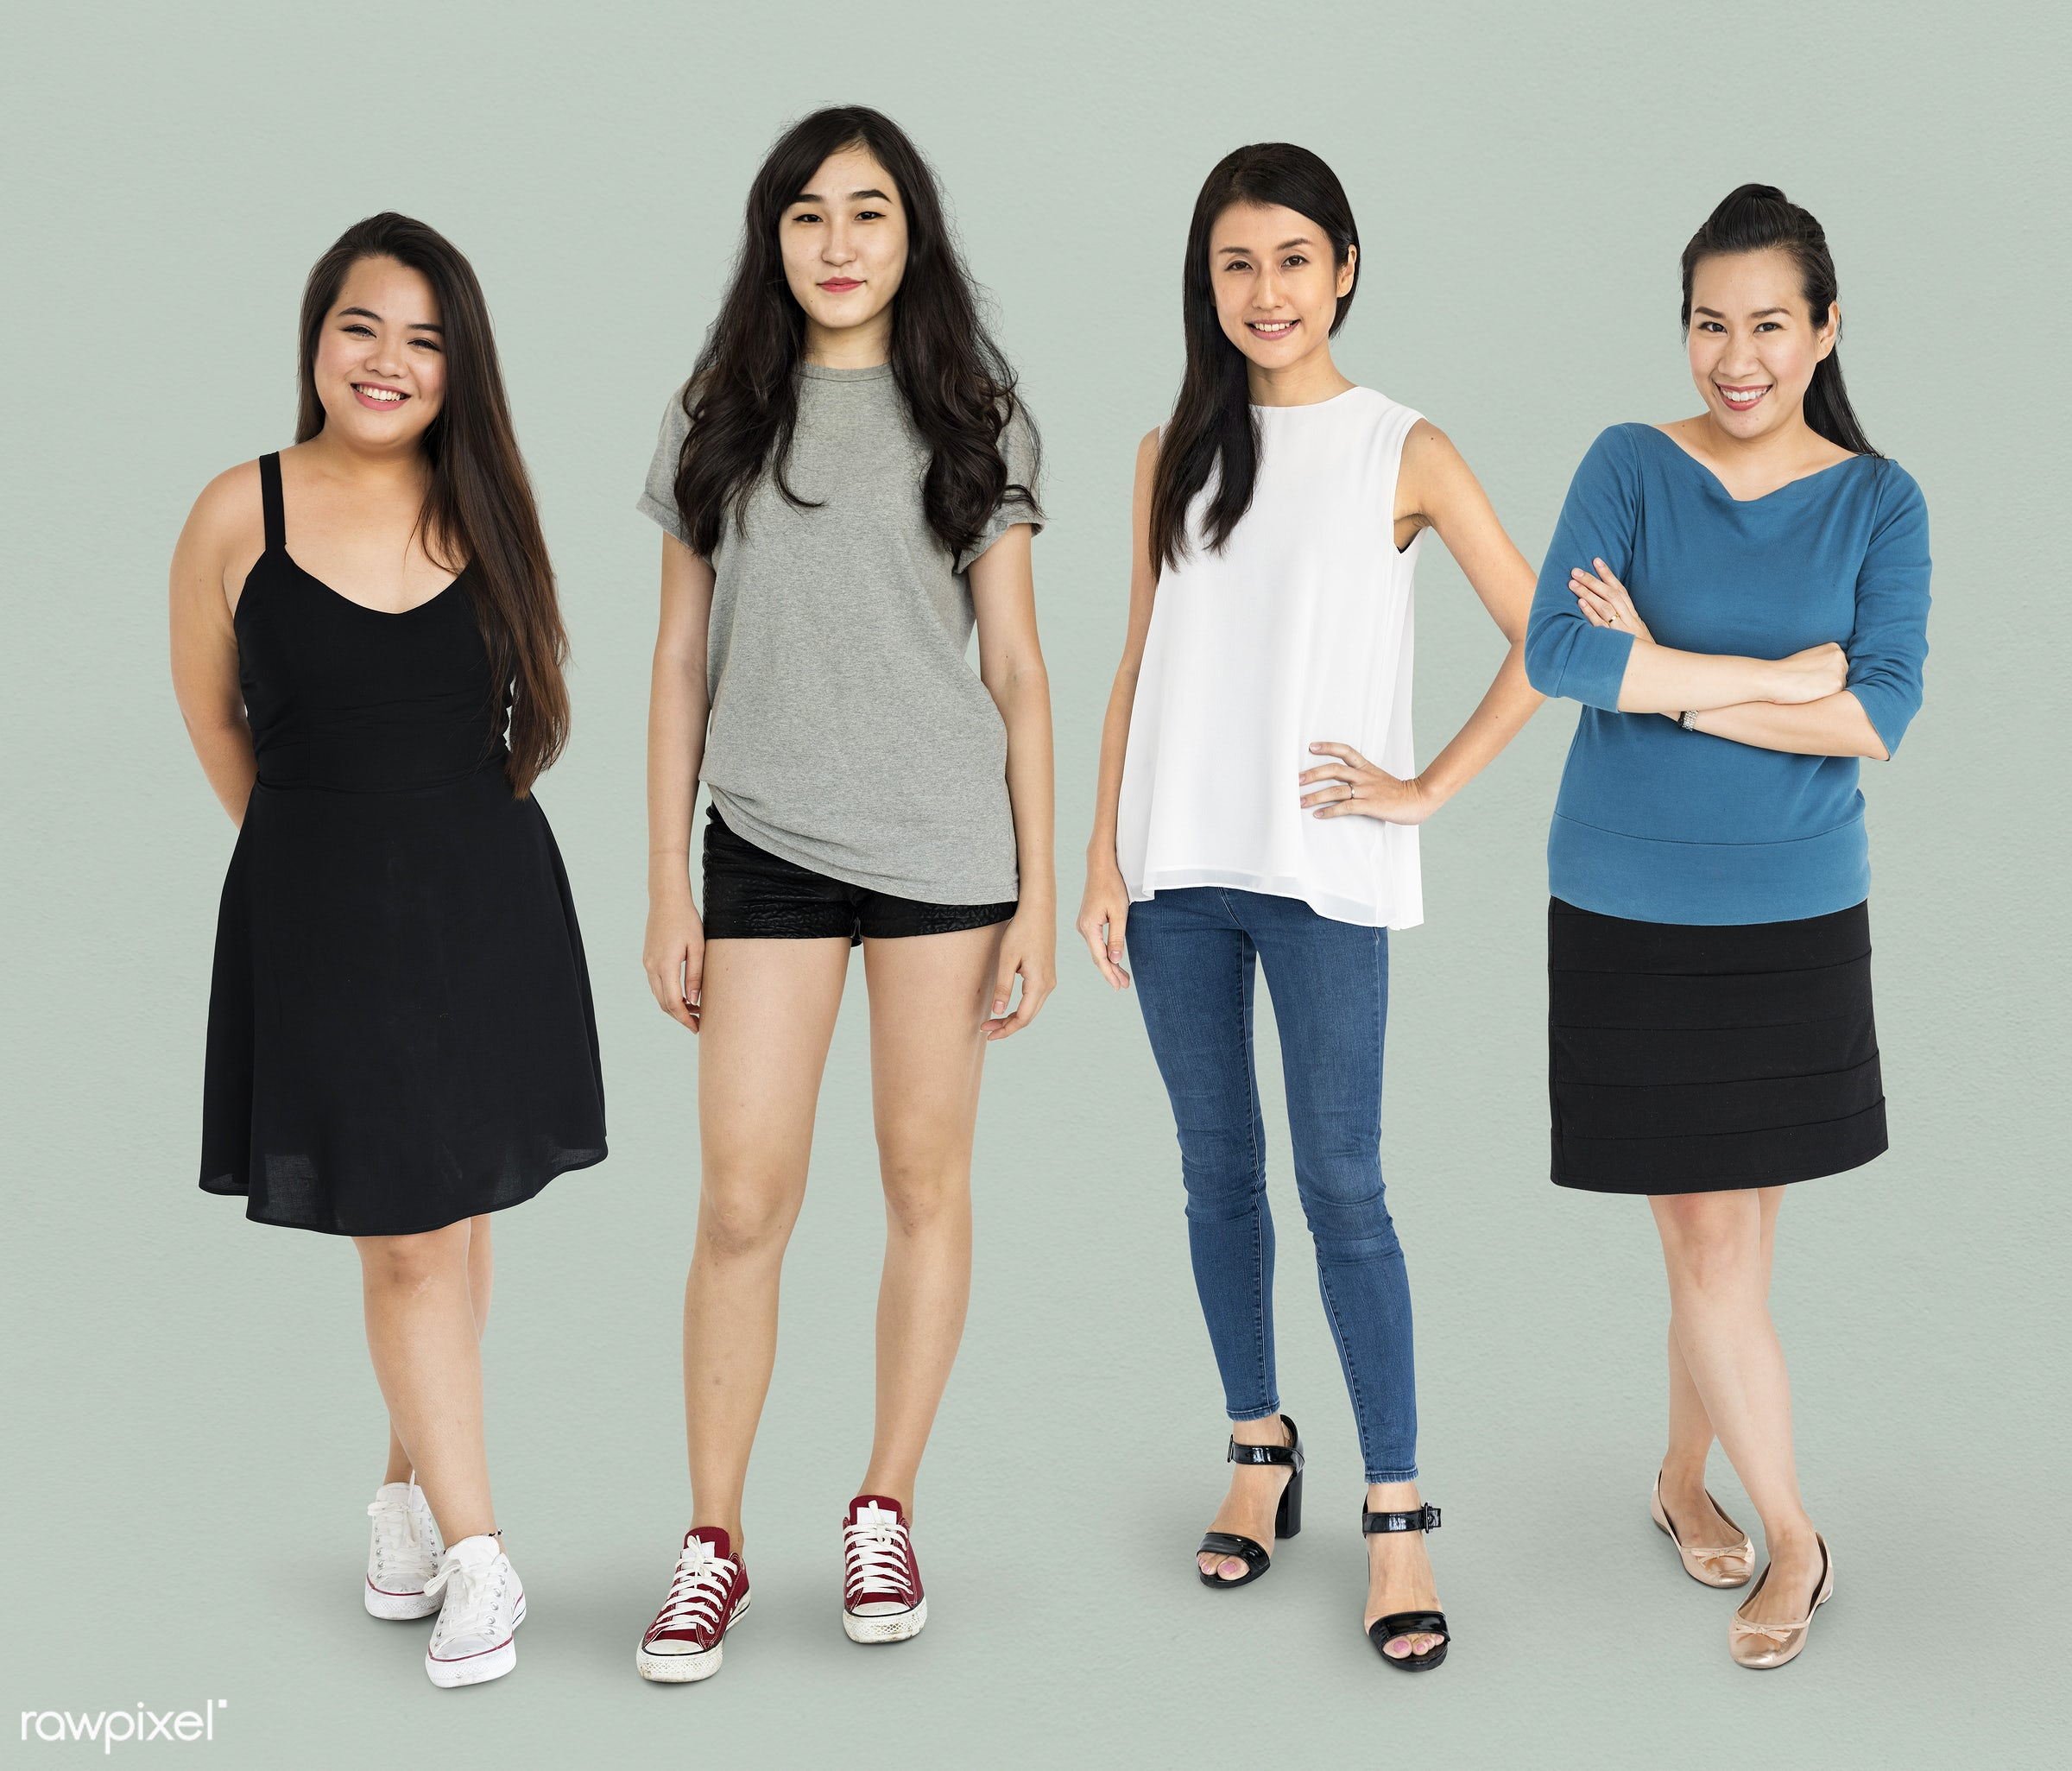 studio, person, diverse, set, people, attraction, together, asian, life, black hair, attractive, woman, lifestyle, feminine...